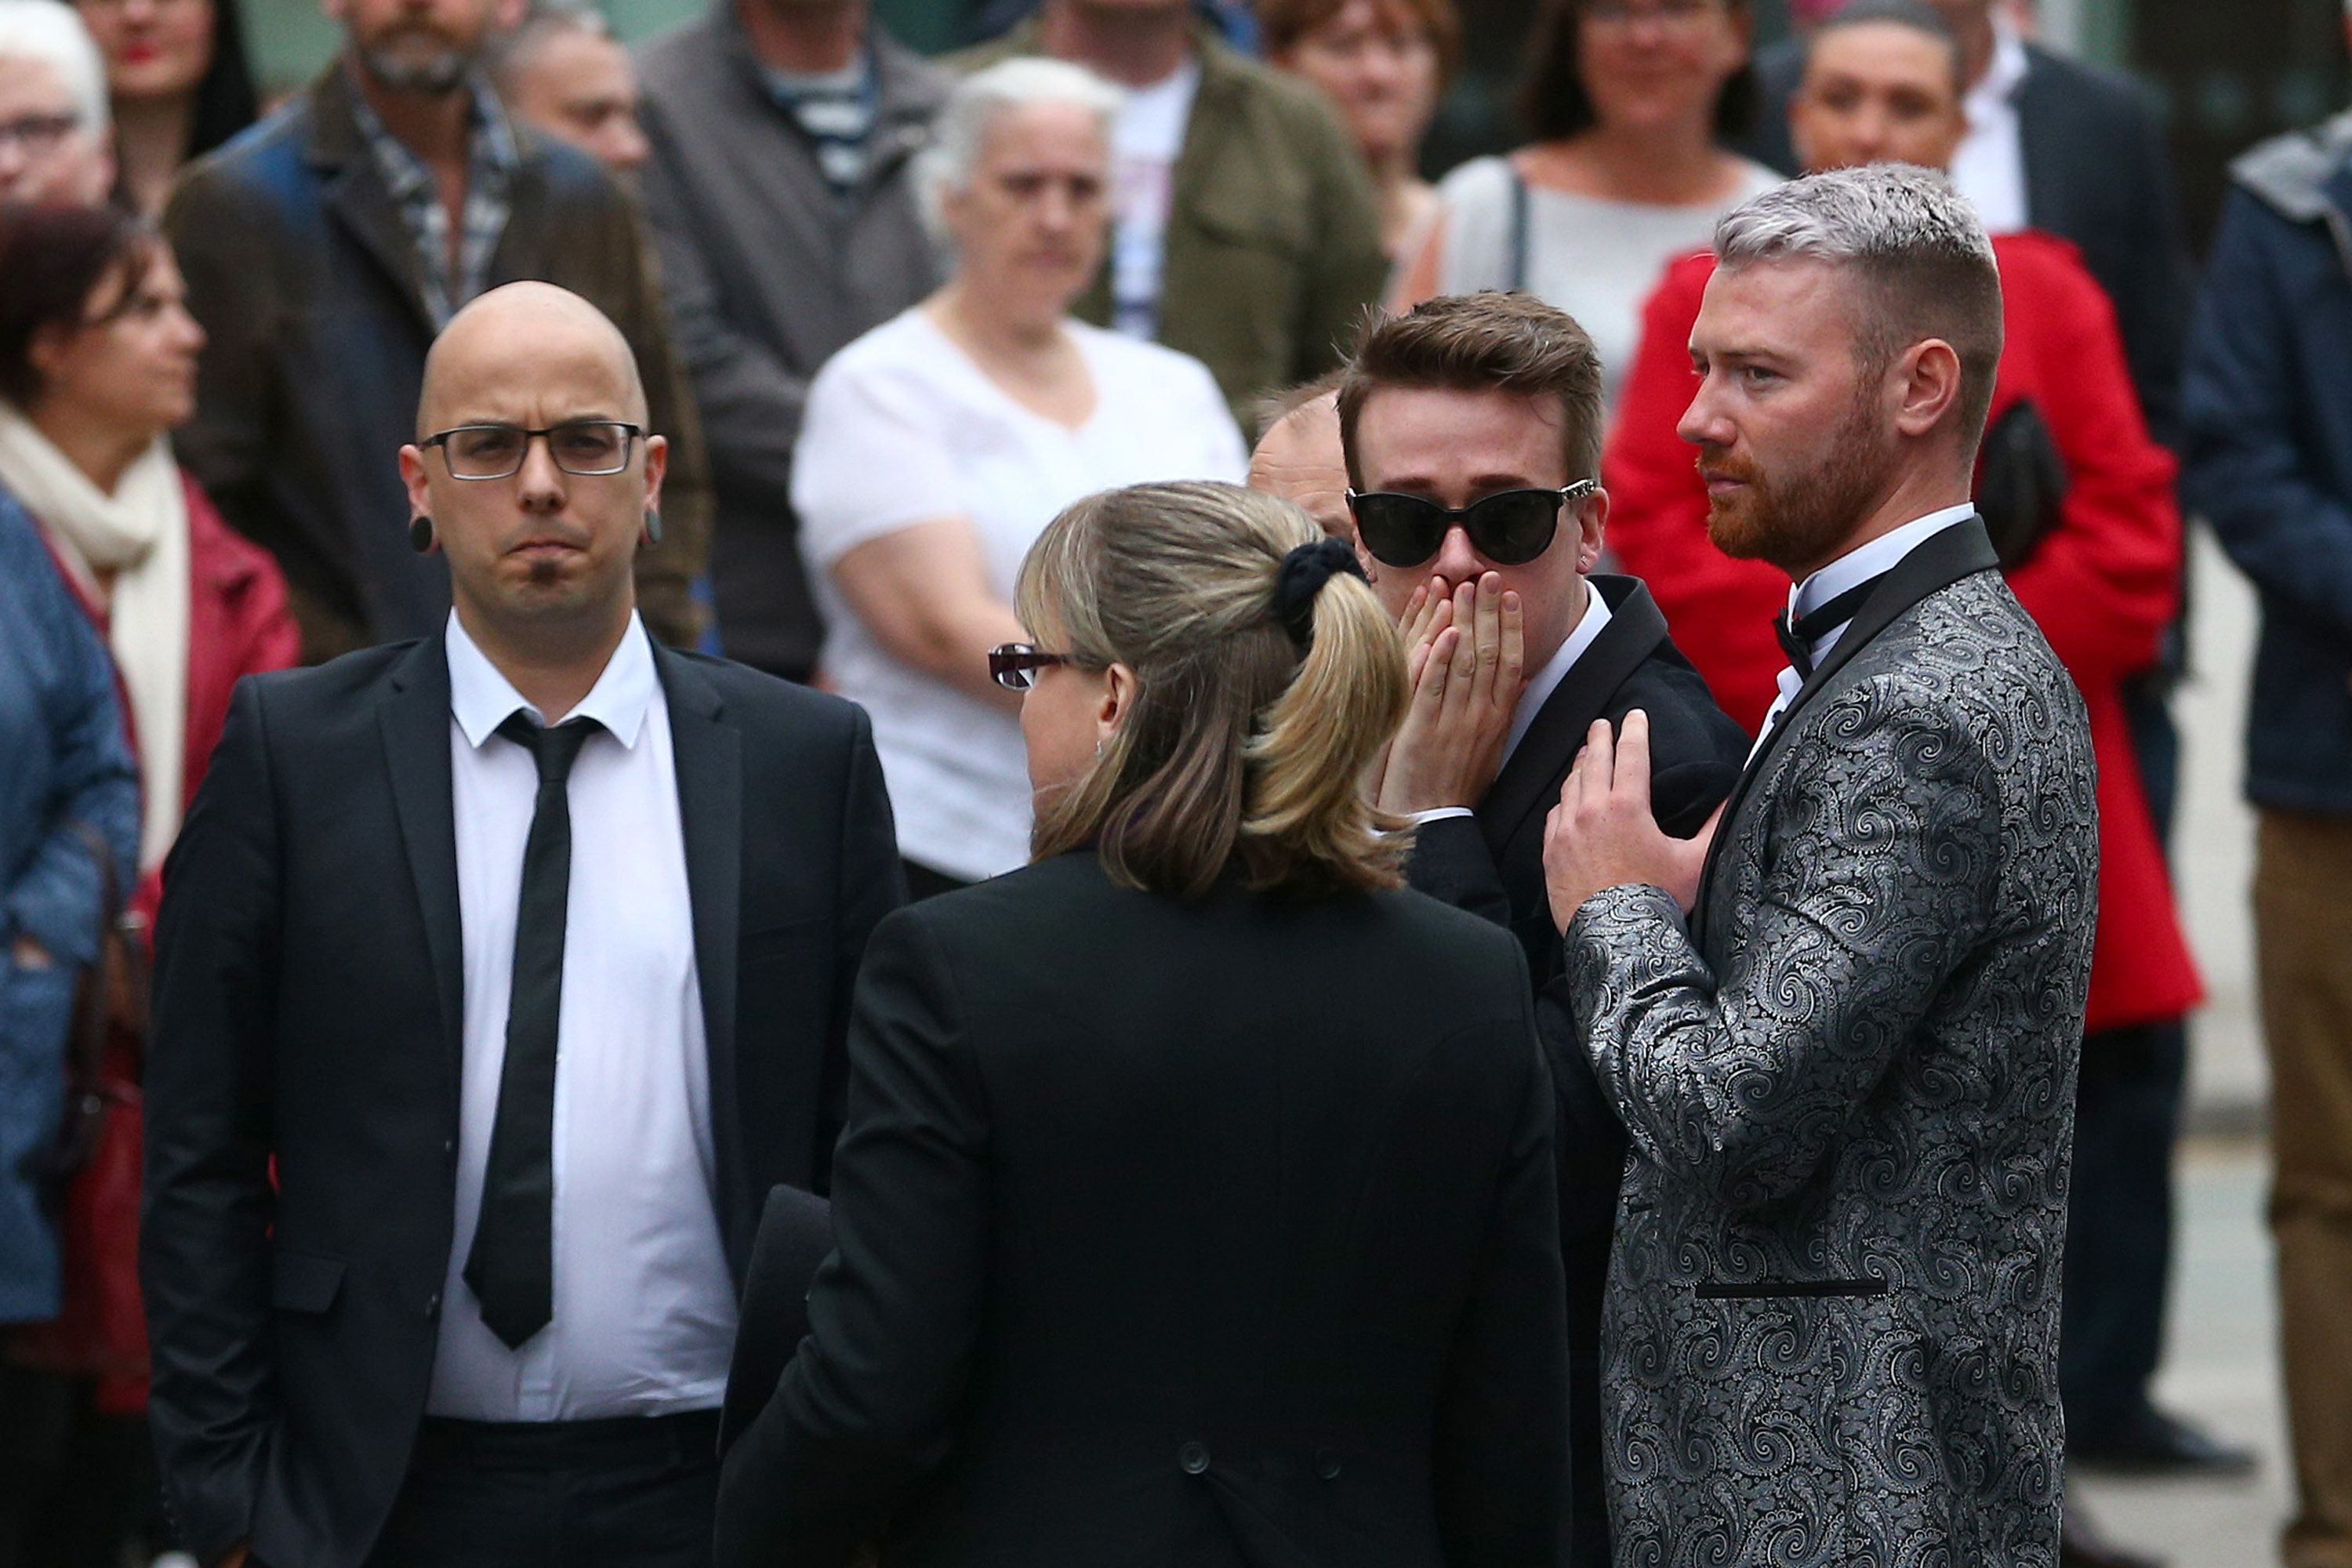 Dan Hett (far left) and at brother Martyn Hett's funeral at Stockport Town